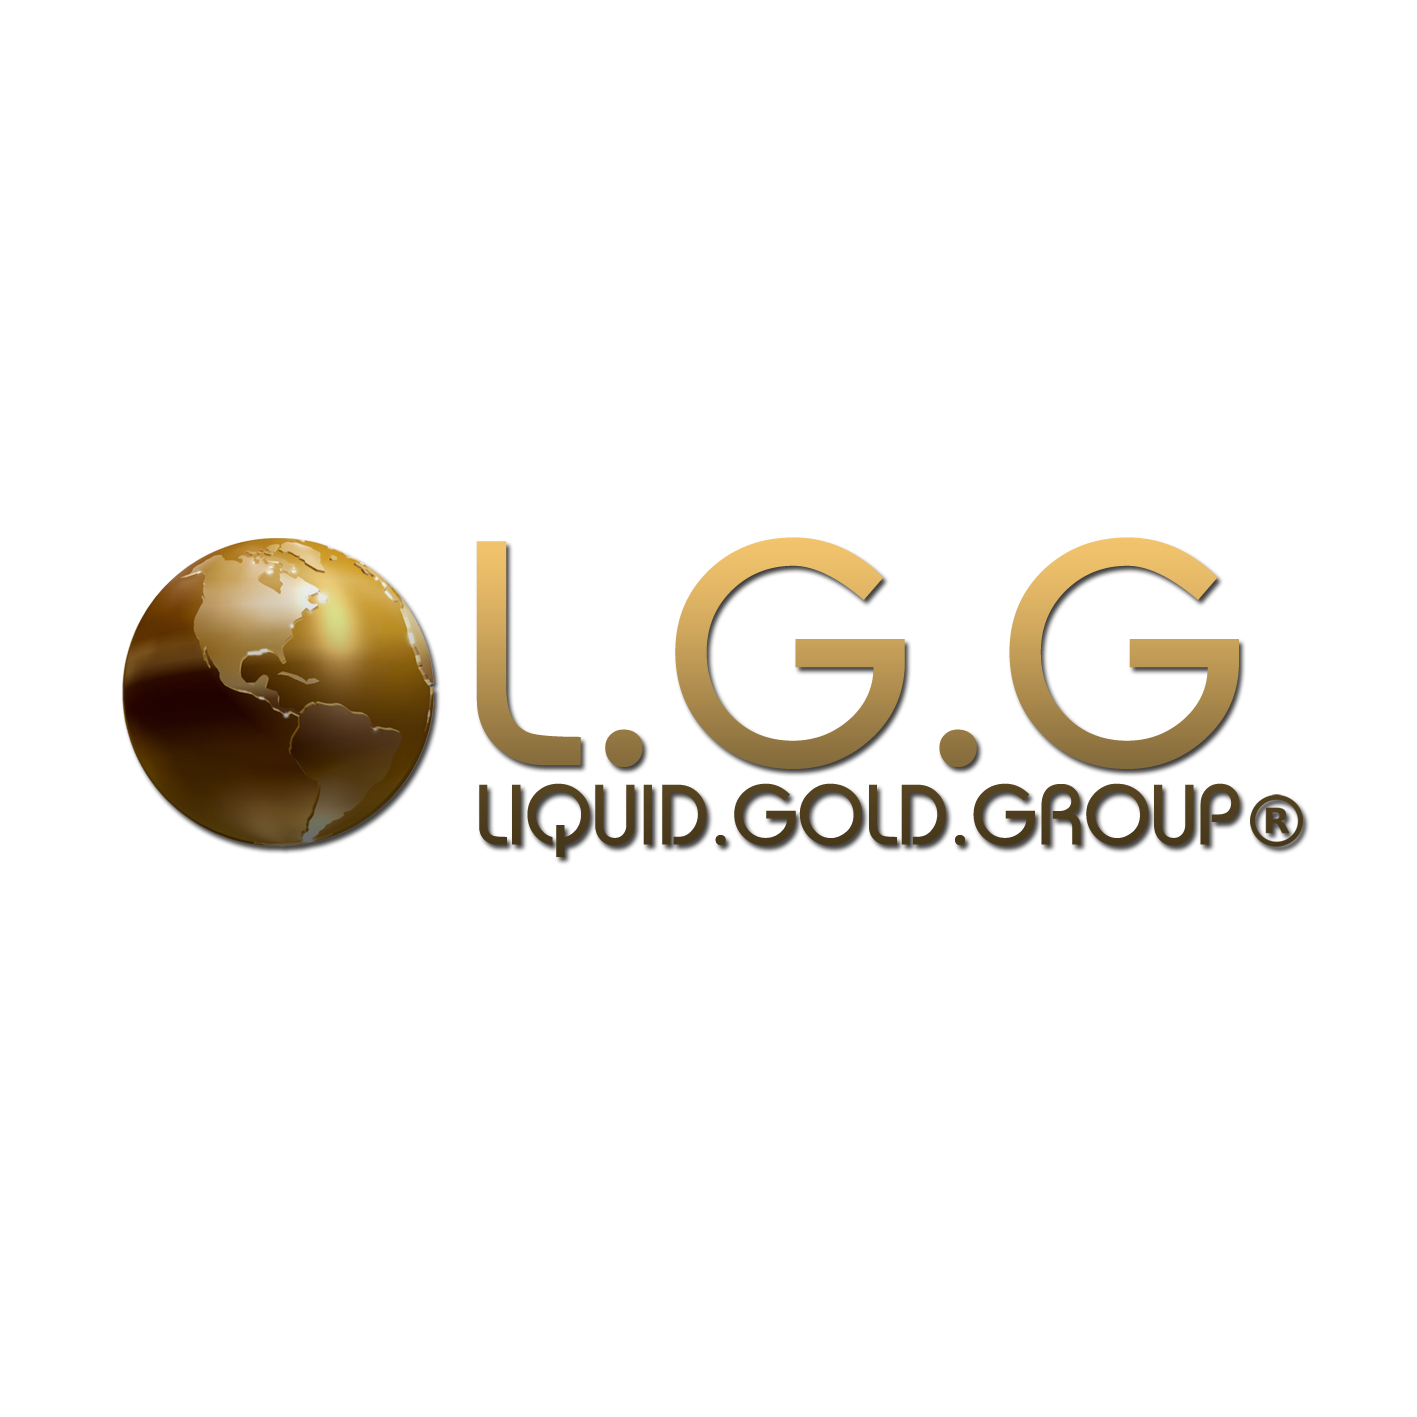 LIQUID GOLD GROUP LOGO DESIGN WORK